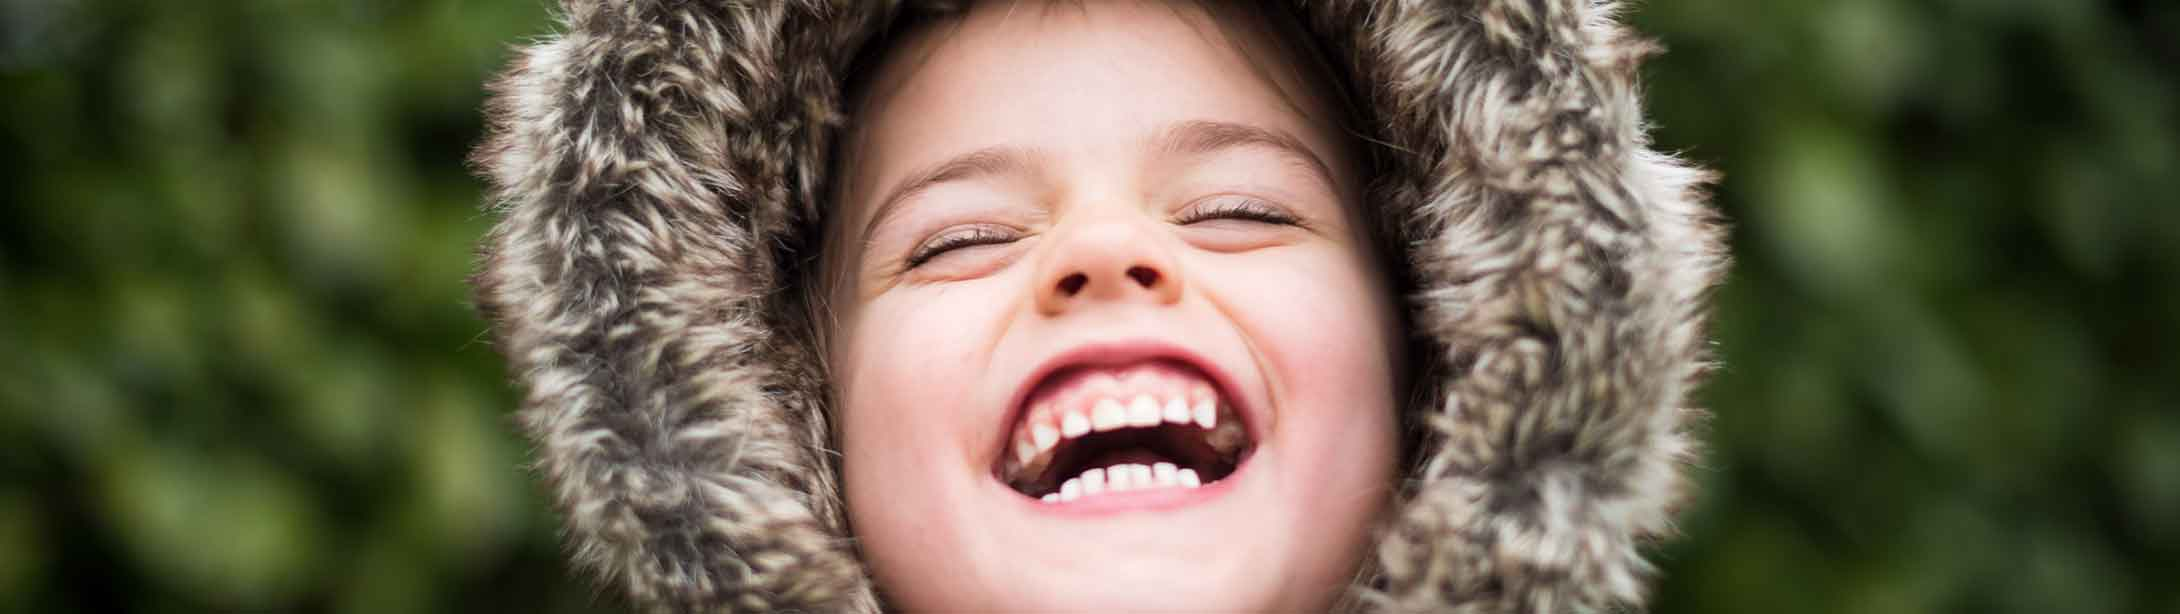 5 tips to follow to keep your child's teeth healthy